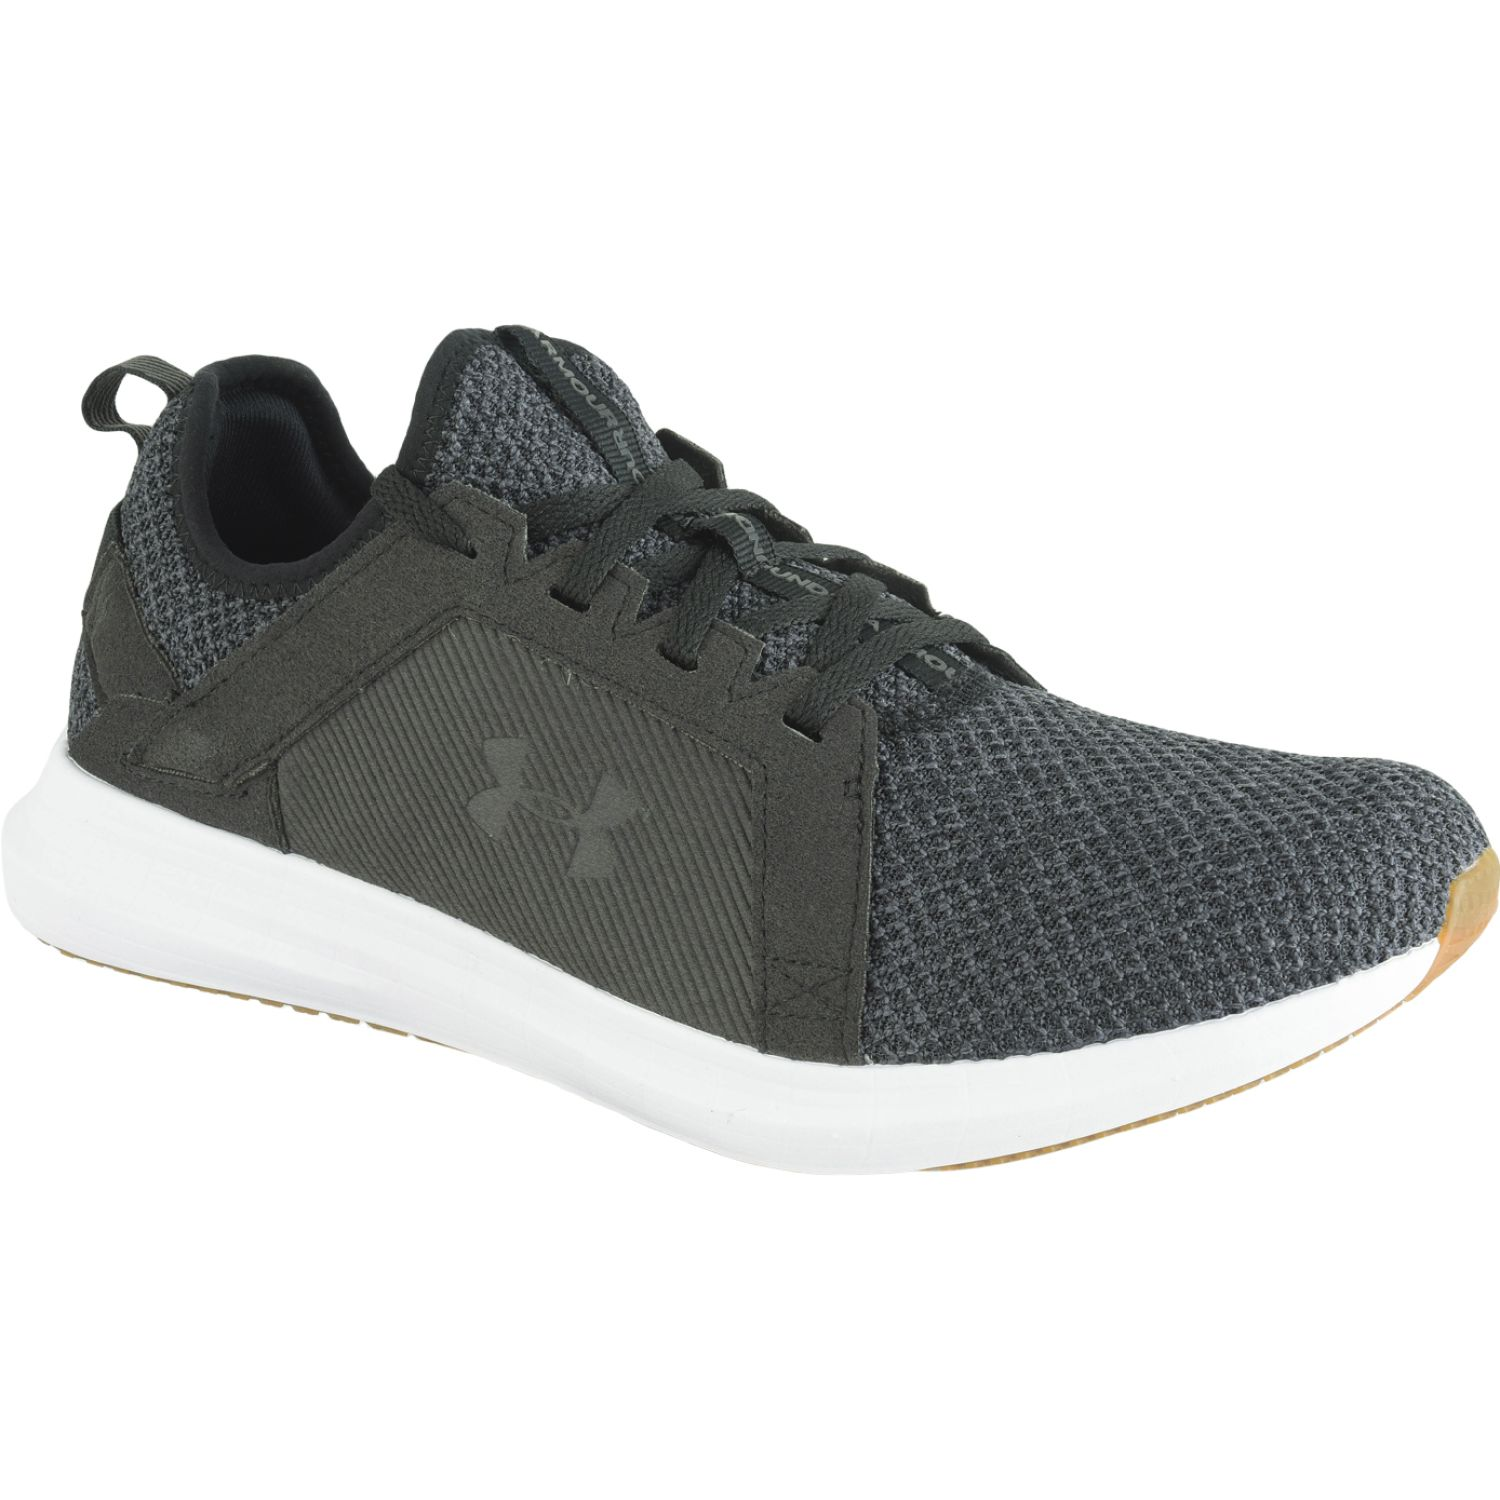 Under Armour ua lounge Negro / acero Walking